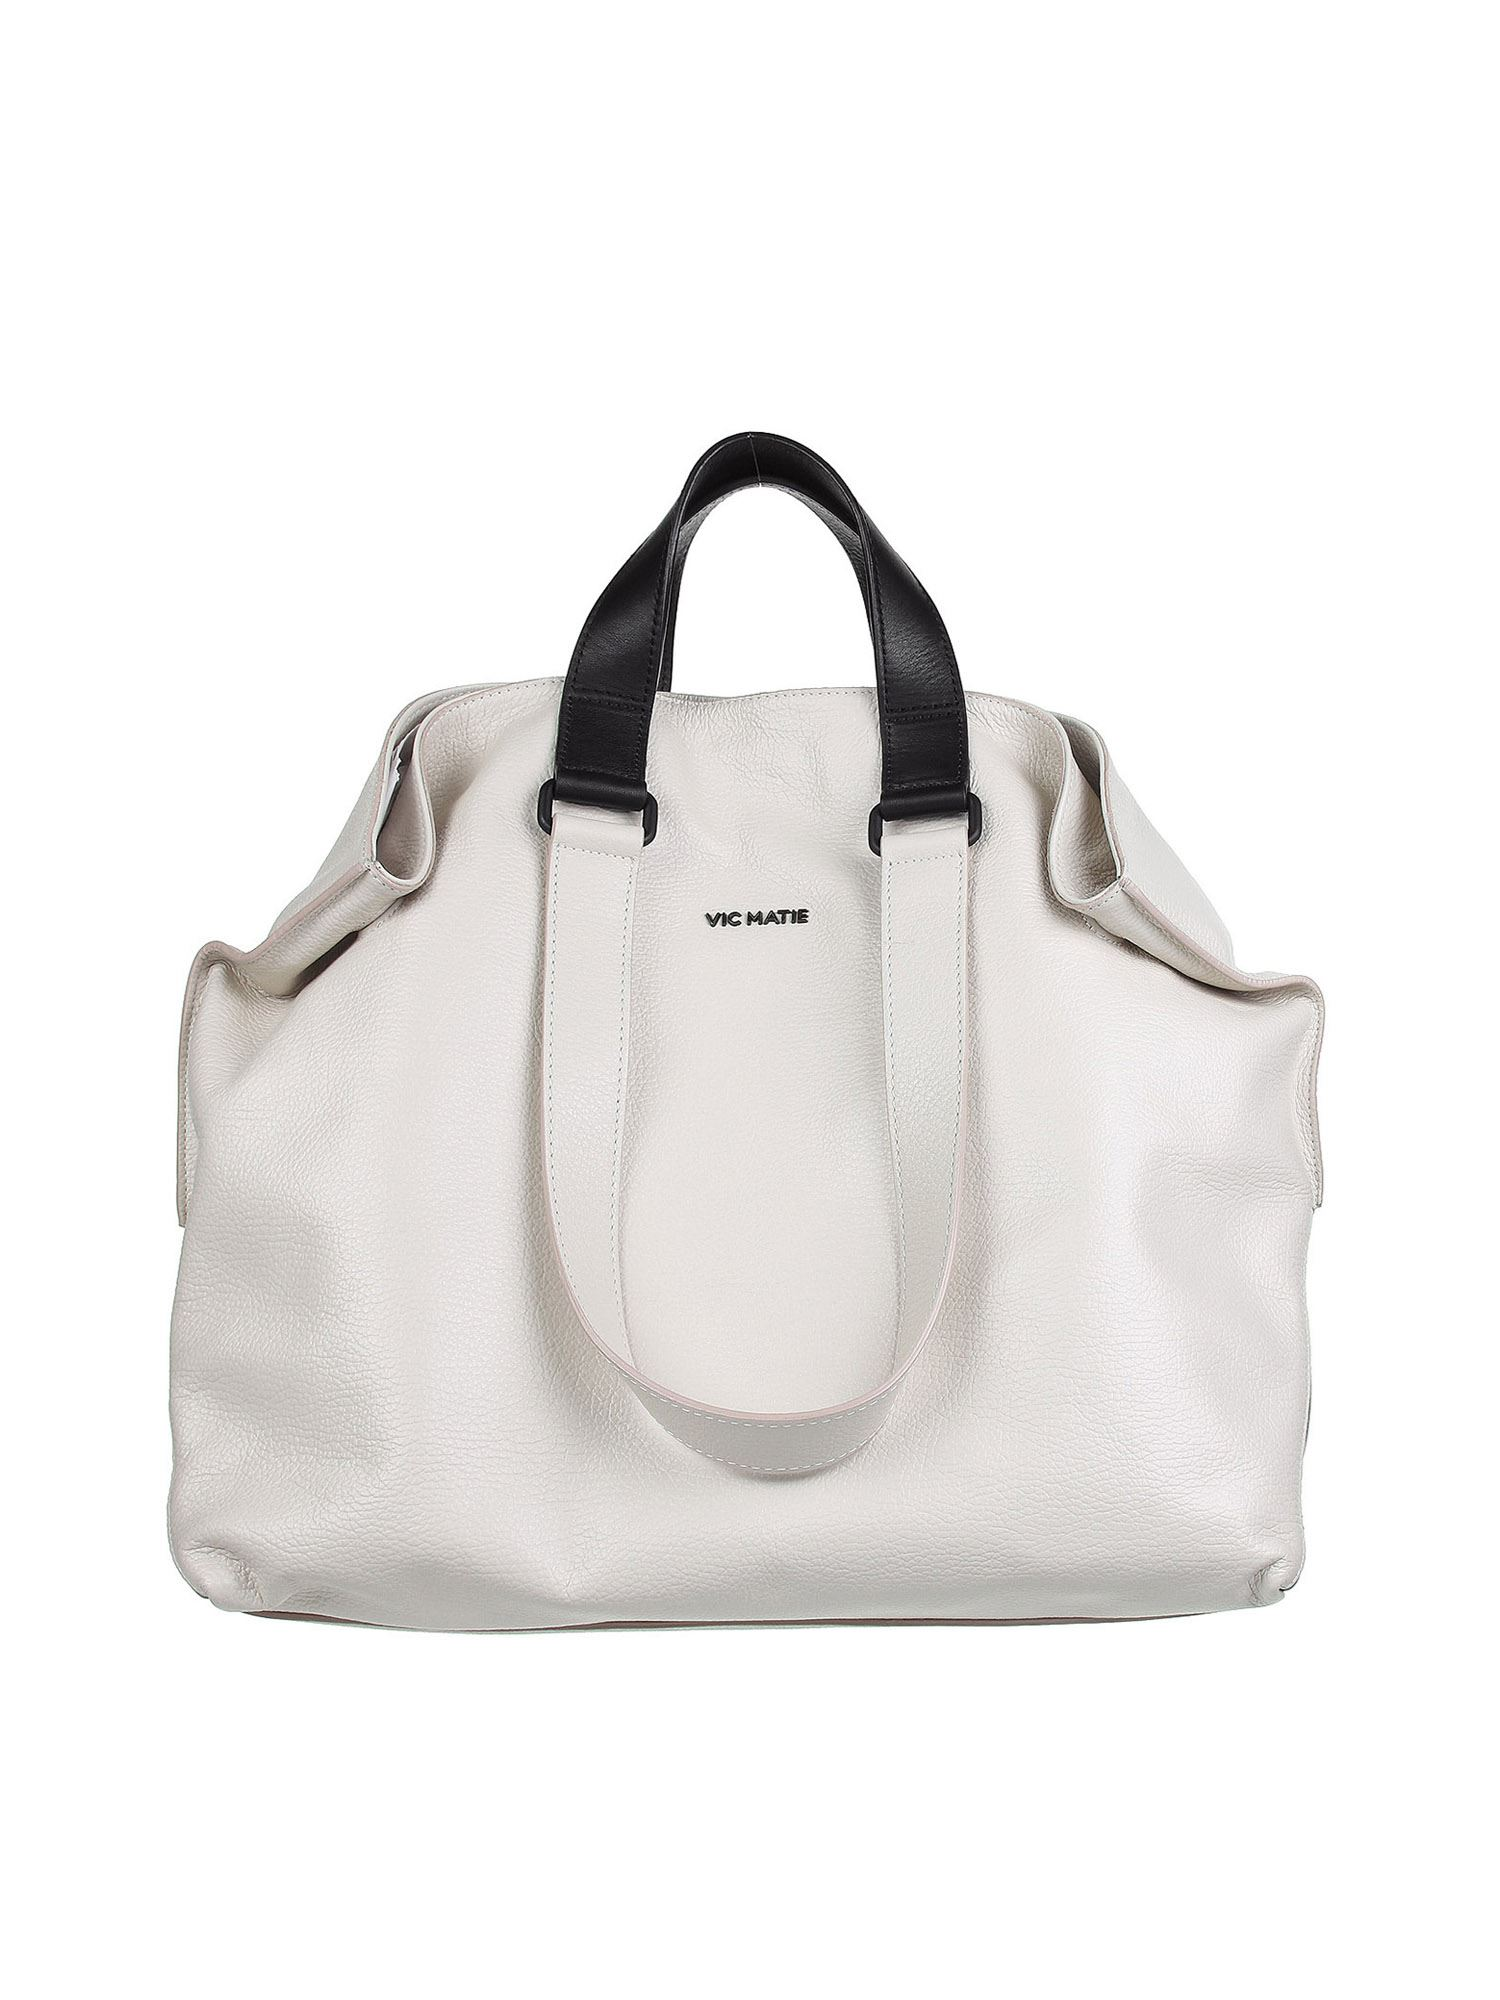 Vic Matie Leathers AGATHE TOTE BAG IN WHITE